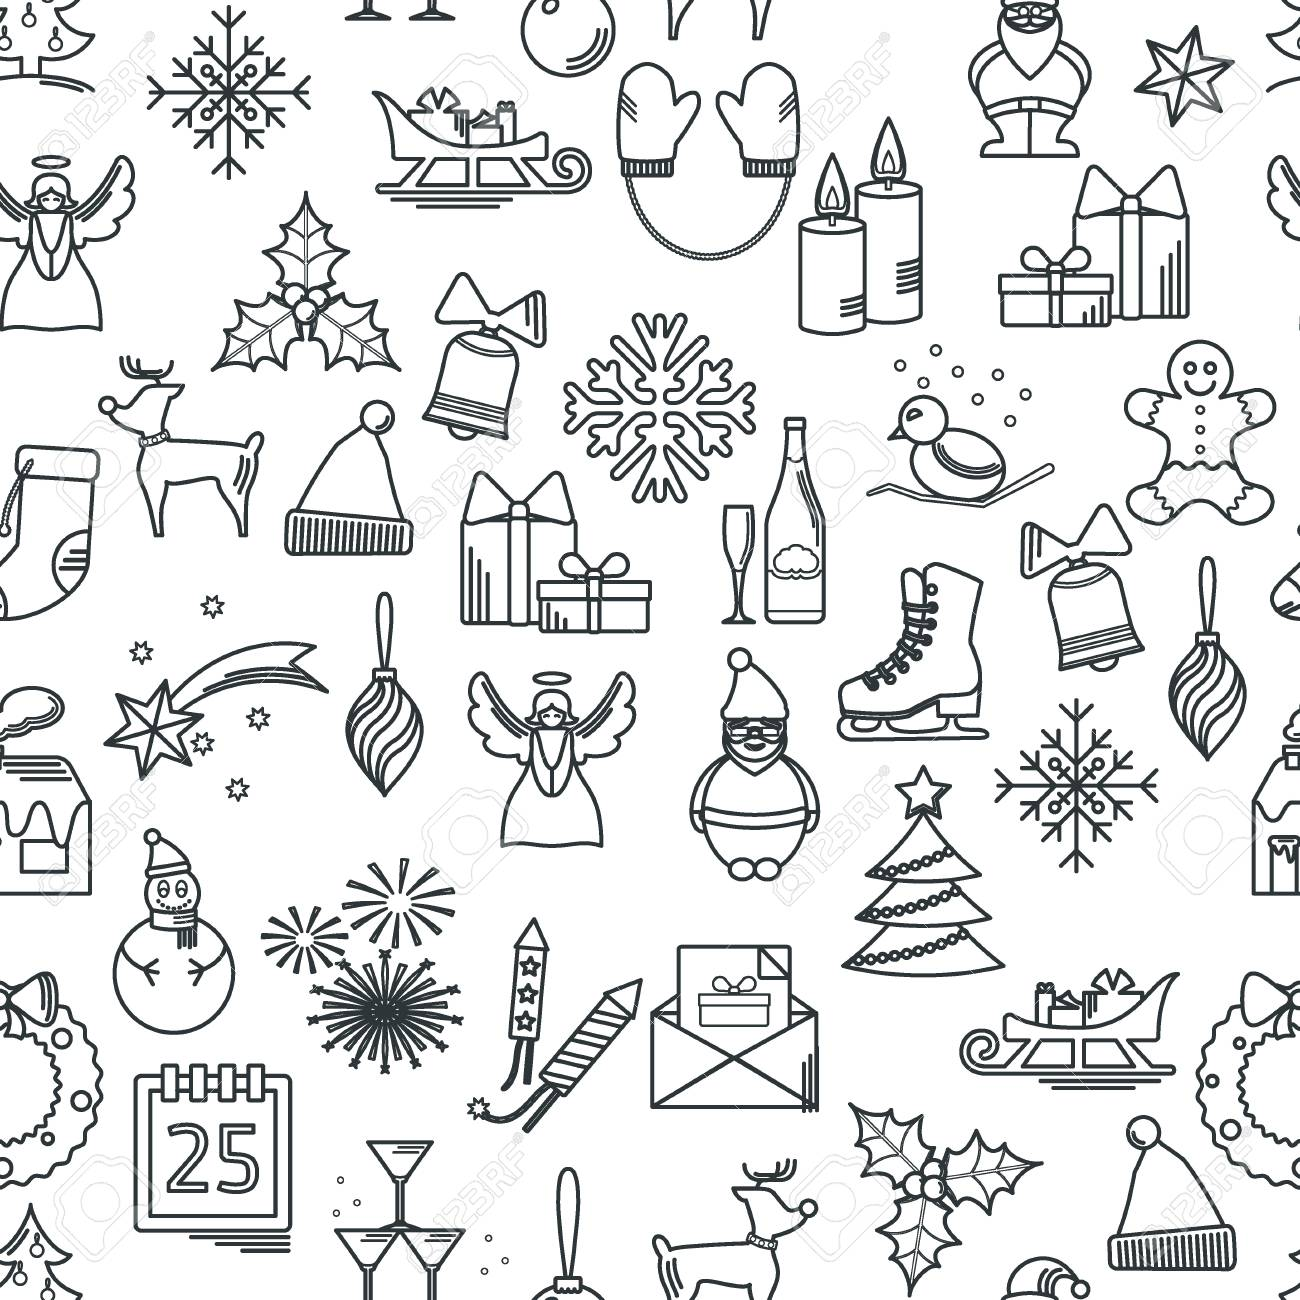 vector vector illustration of christmas icons outline for design website background banner thin new year seamless pattern template for your new year